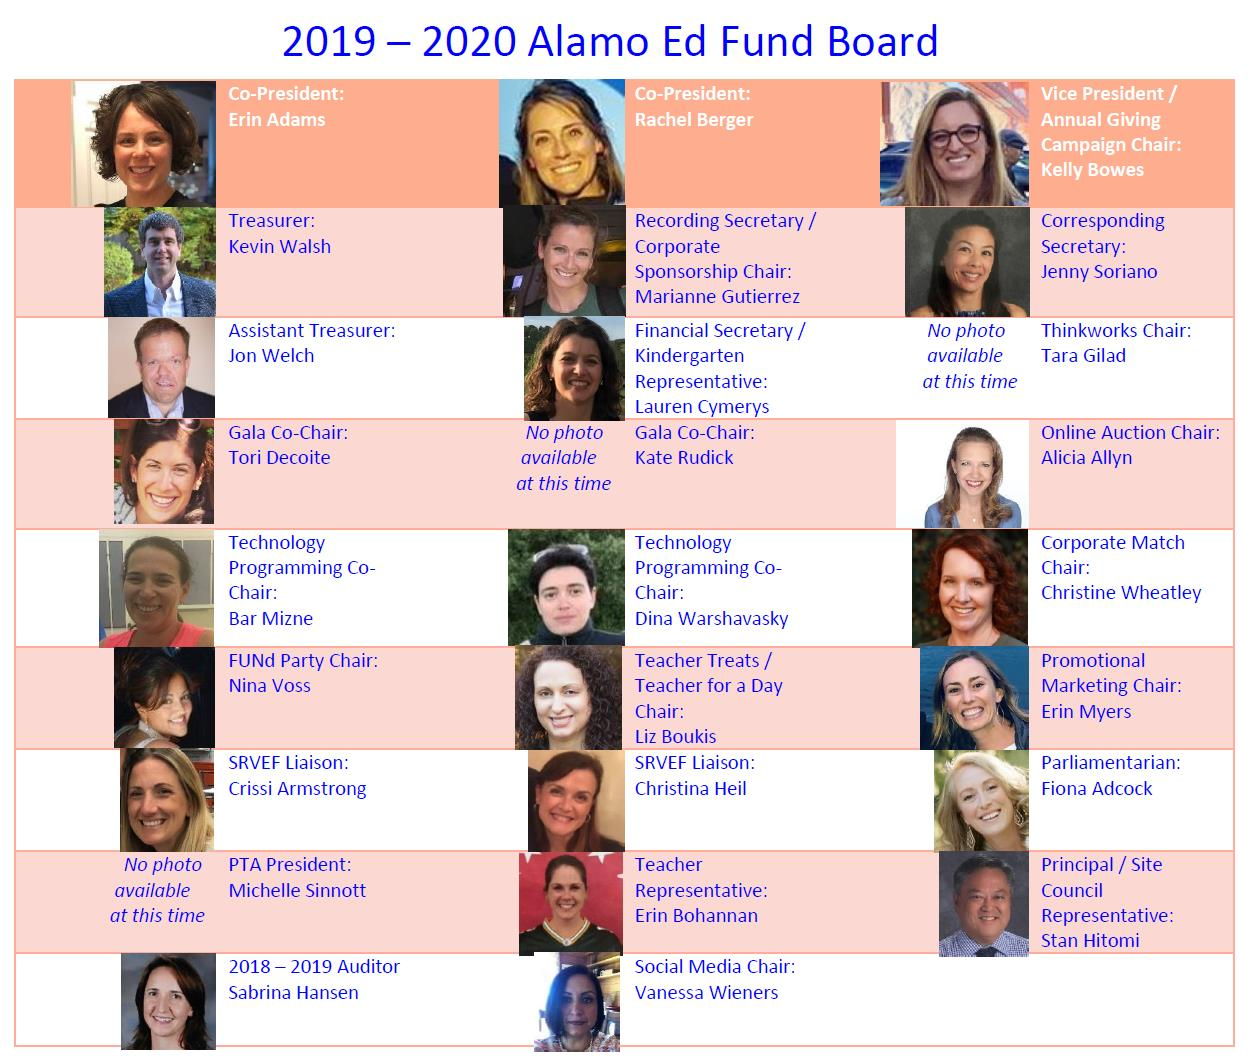 Ed Fund Board Photos and Titles